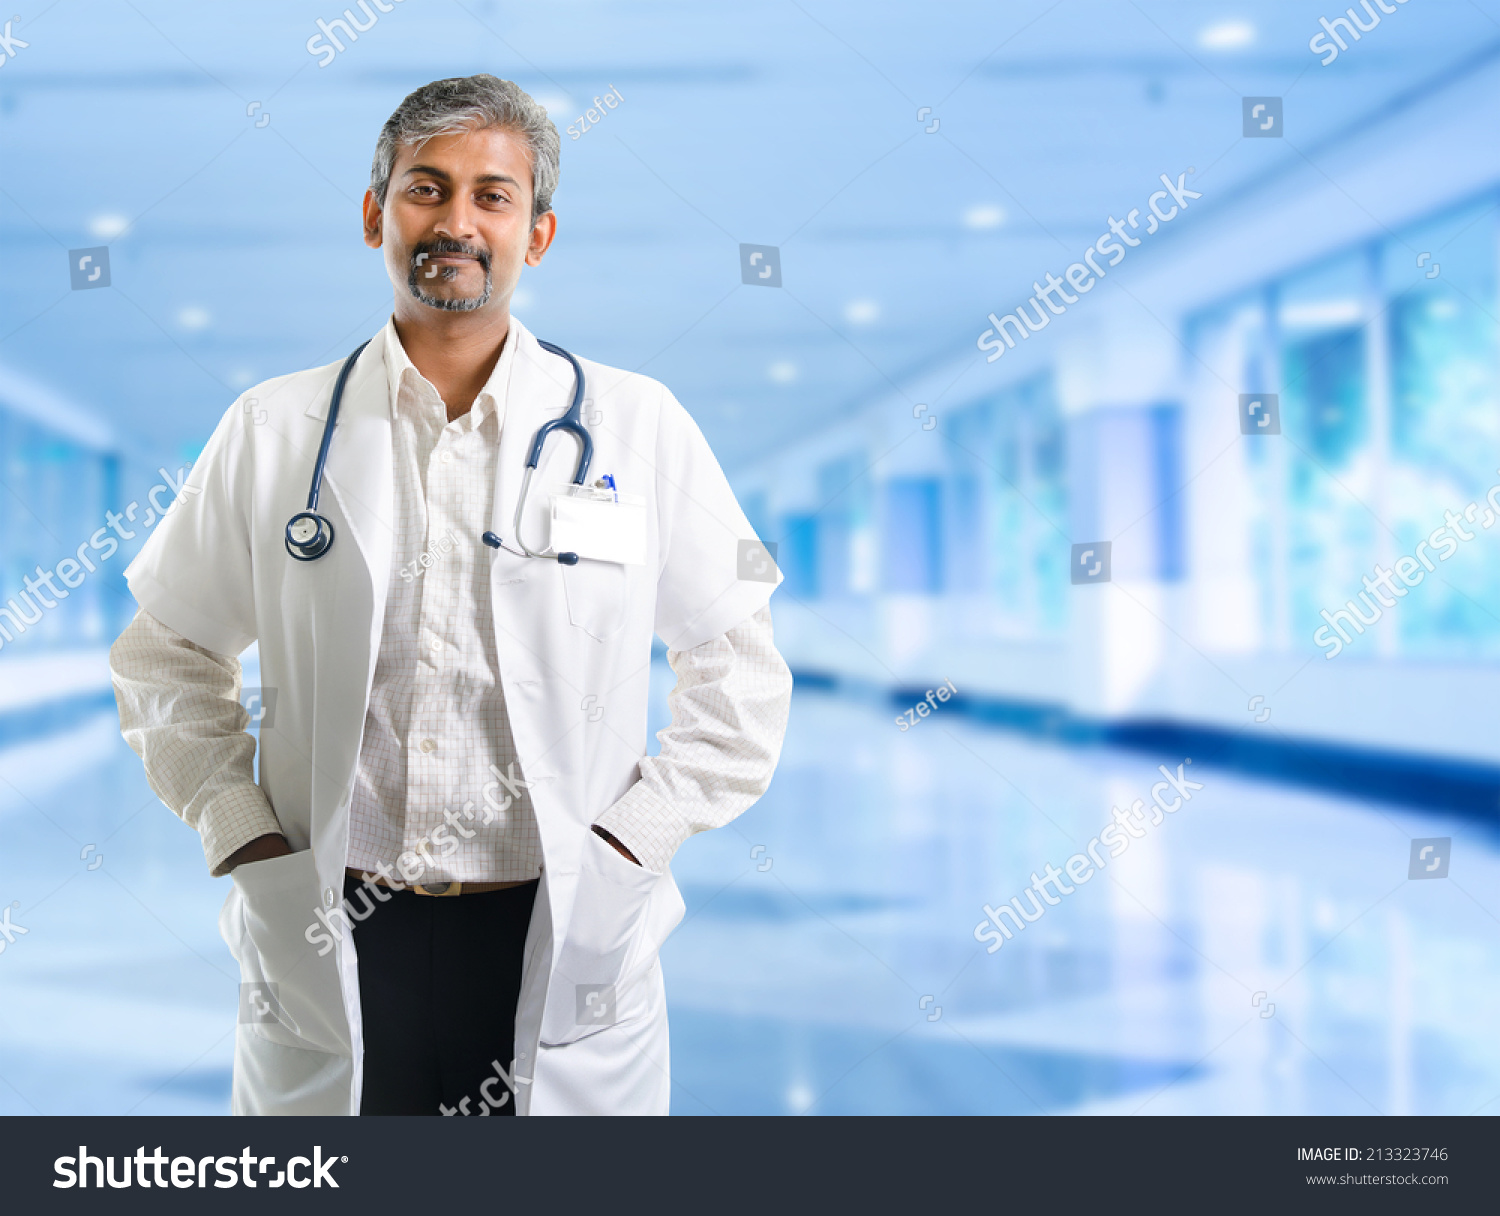 hospital in india Cardiology surgery in india is performed to treat the heart diseases.